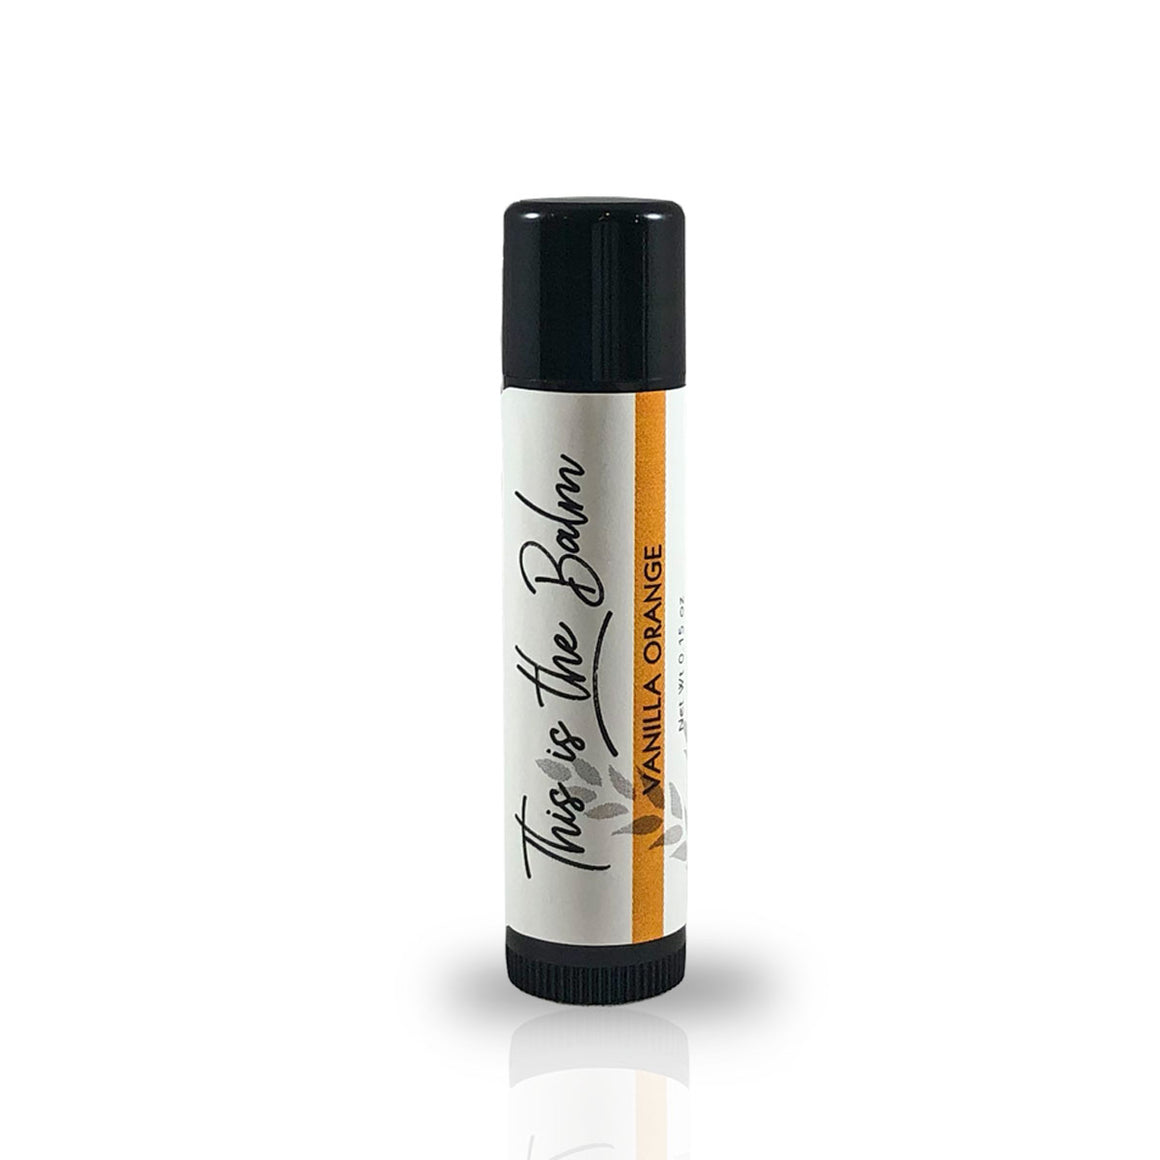 It's The Balm: Vanilla Orange Lip Balm